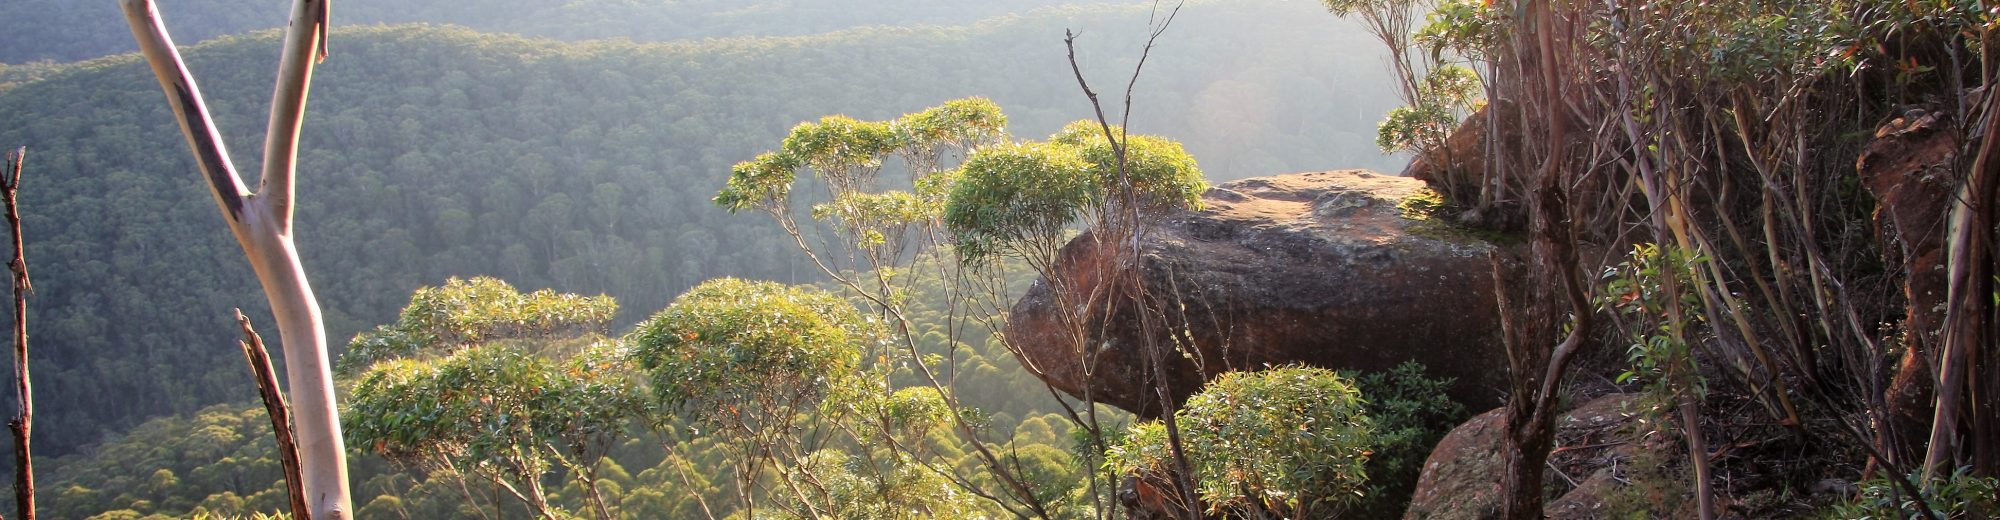 Weeds of the Blue Mountains